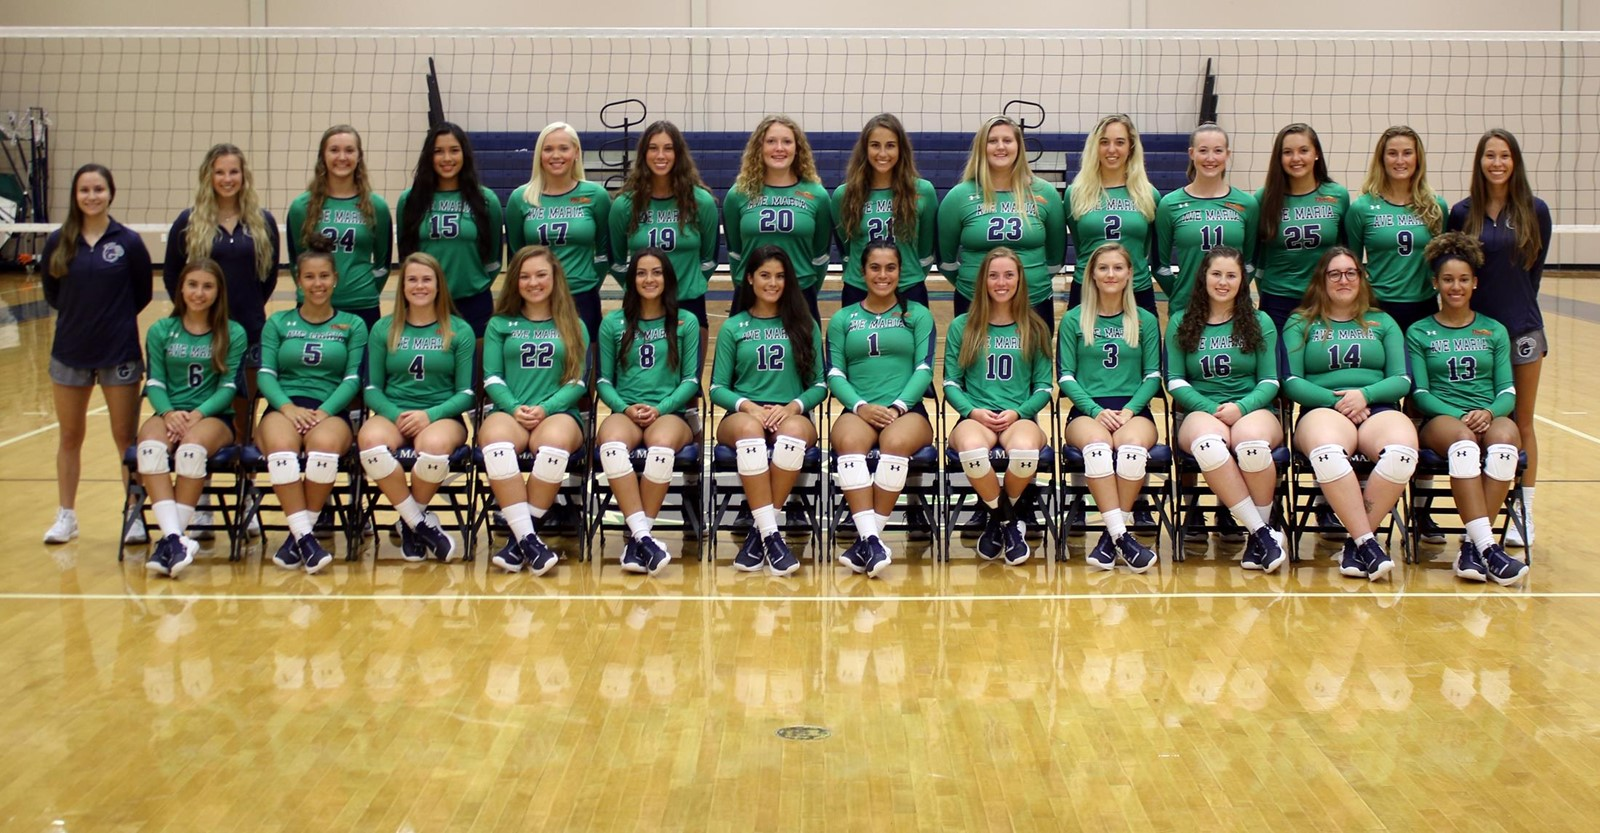 2019 Volleyball Roster Ave Maria University Athletics